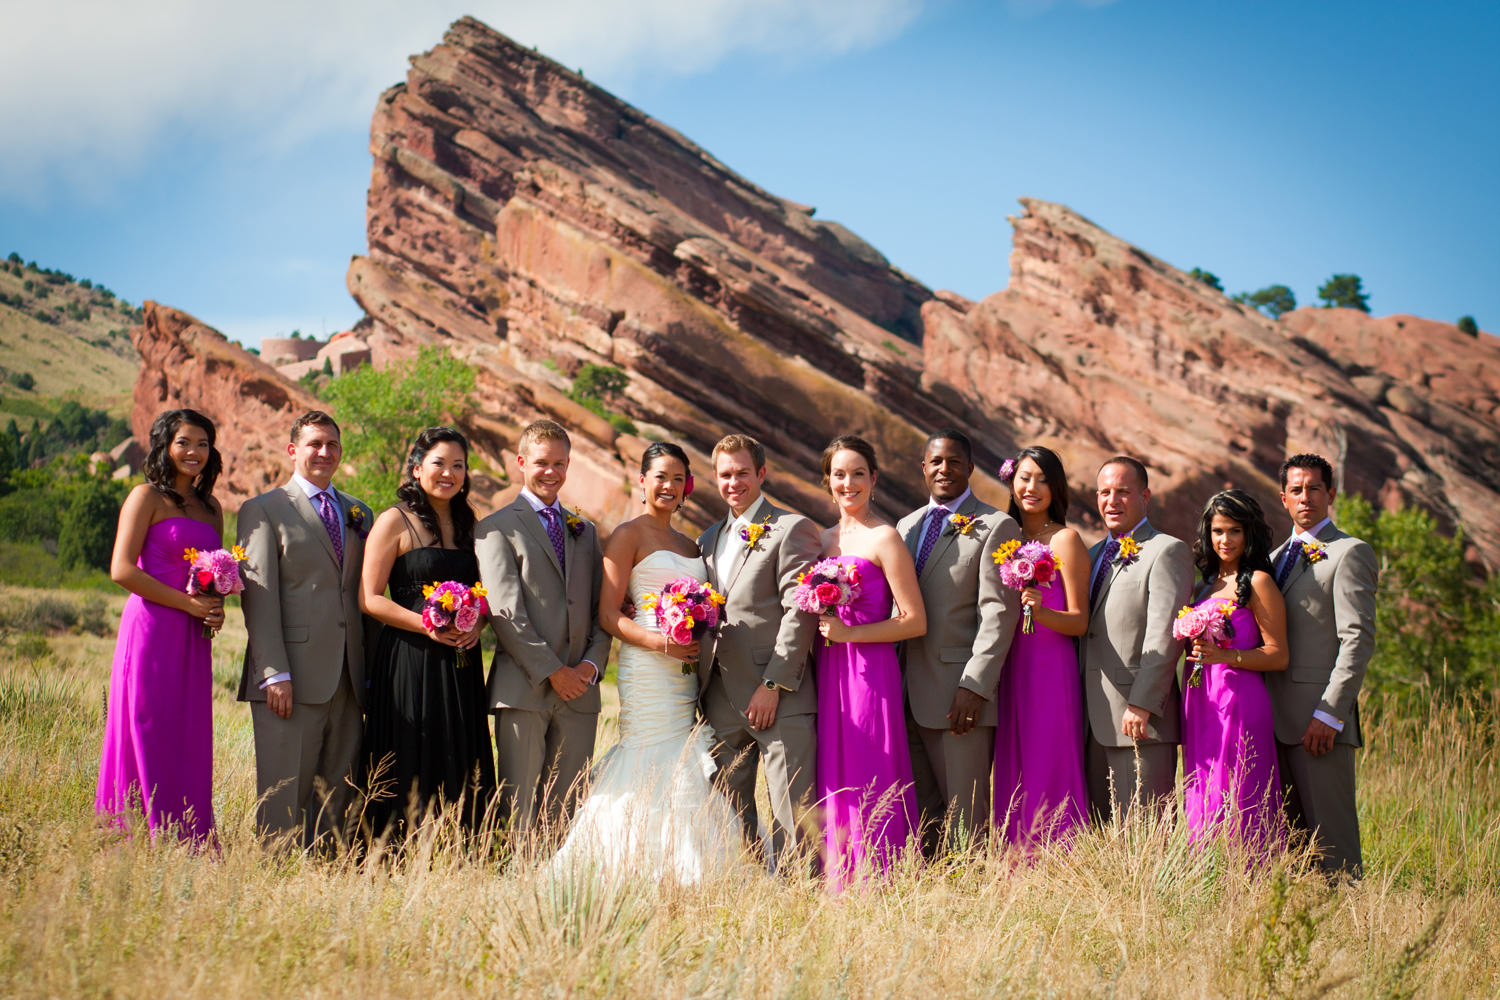 wedding party in a yucca field with formations towering behind at a red rocks wedding in morrison colorado